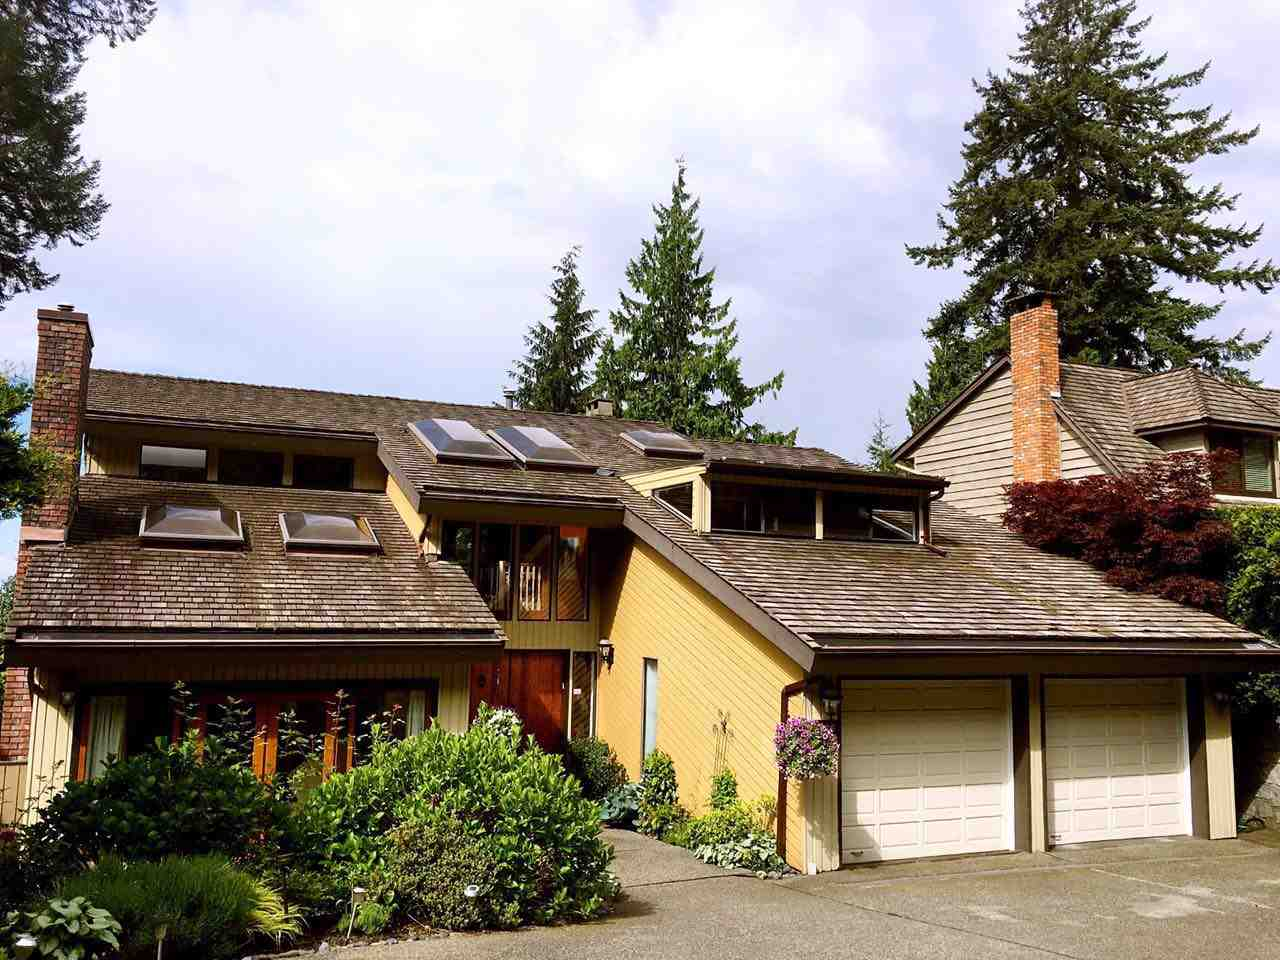 Cul-de-sac overlooking private greenbelt! Vaulted ceilings & central spiral staircase. Luxurious private master suite with adjoining sunroom/sitting room. Open plan main floor with large principal rooms, 2 fireplaces, updated kitchen/family room opens to entertainment size VIEW Sundeck. Main floor guest bedroom & bathroom. Lower garden level is a teenage dream with over height ceilings, games room, recreation room with fireplace, snack bar and studio suite size bedroom and tons of storage. Many updates include: euro windows, Brazilian hardwood floors, kitchen updates, tile floors, stainless appliances, mouldings, heated floors in kitchen & bath. Open Sat.Sun. Sep30, Oct1st 2-4pm